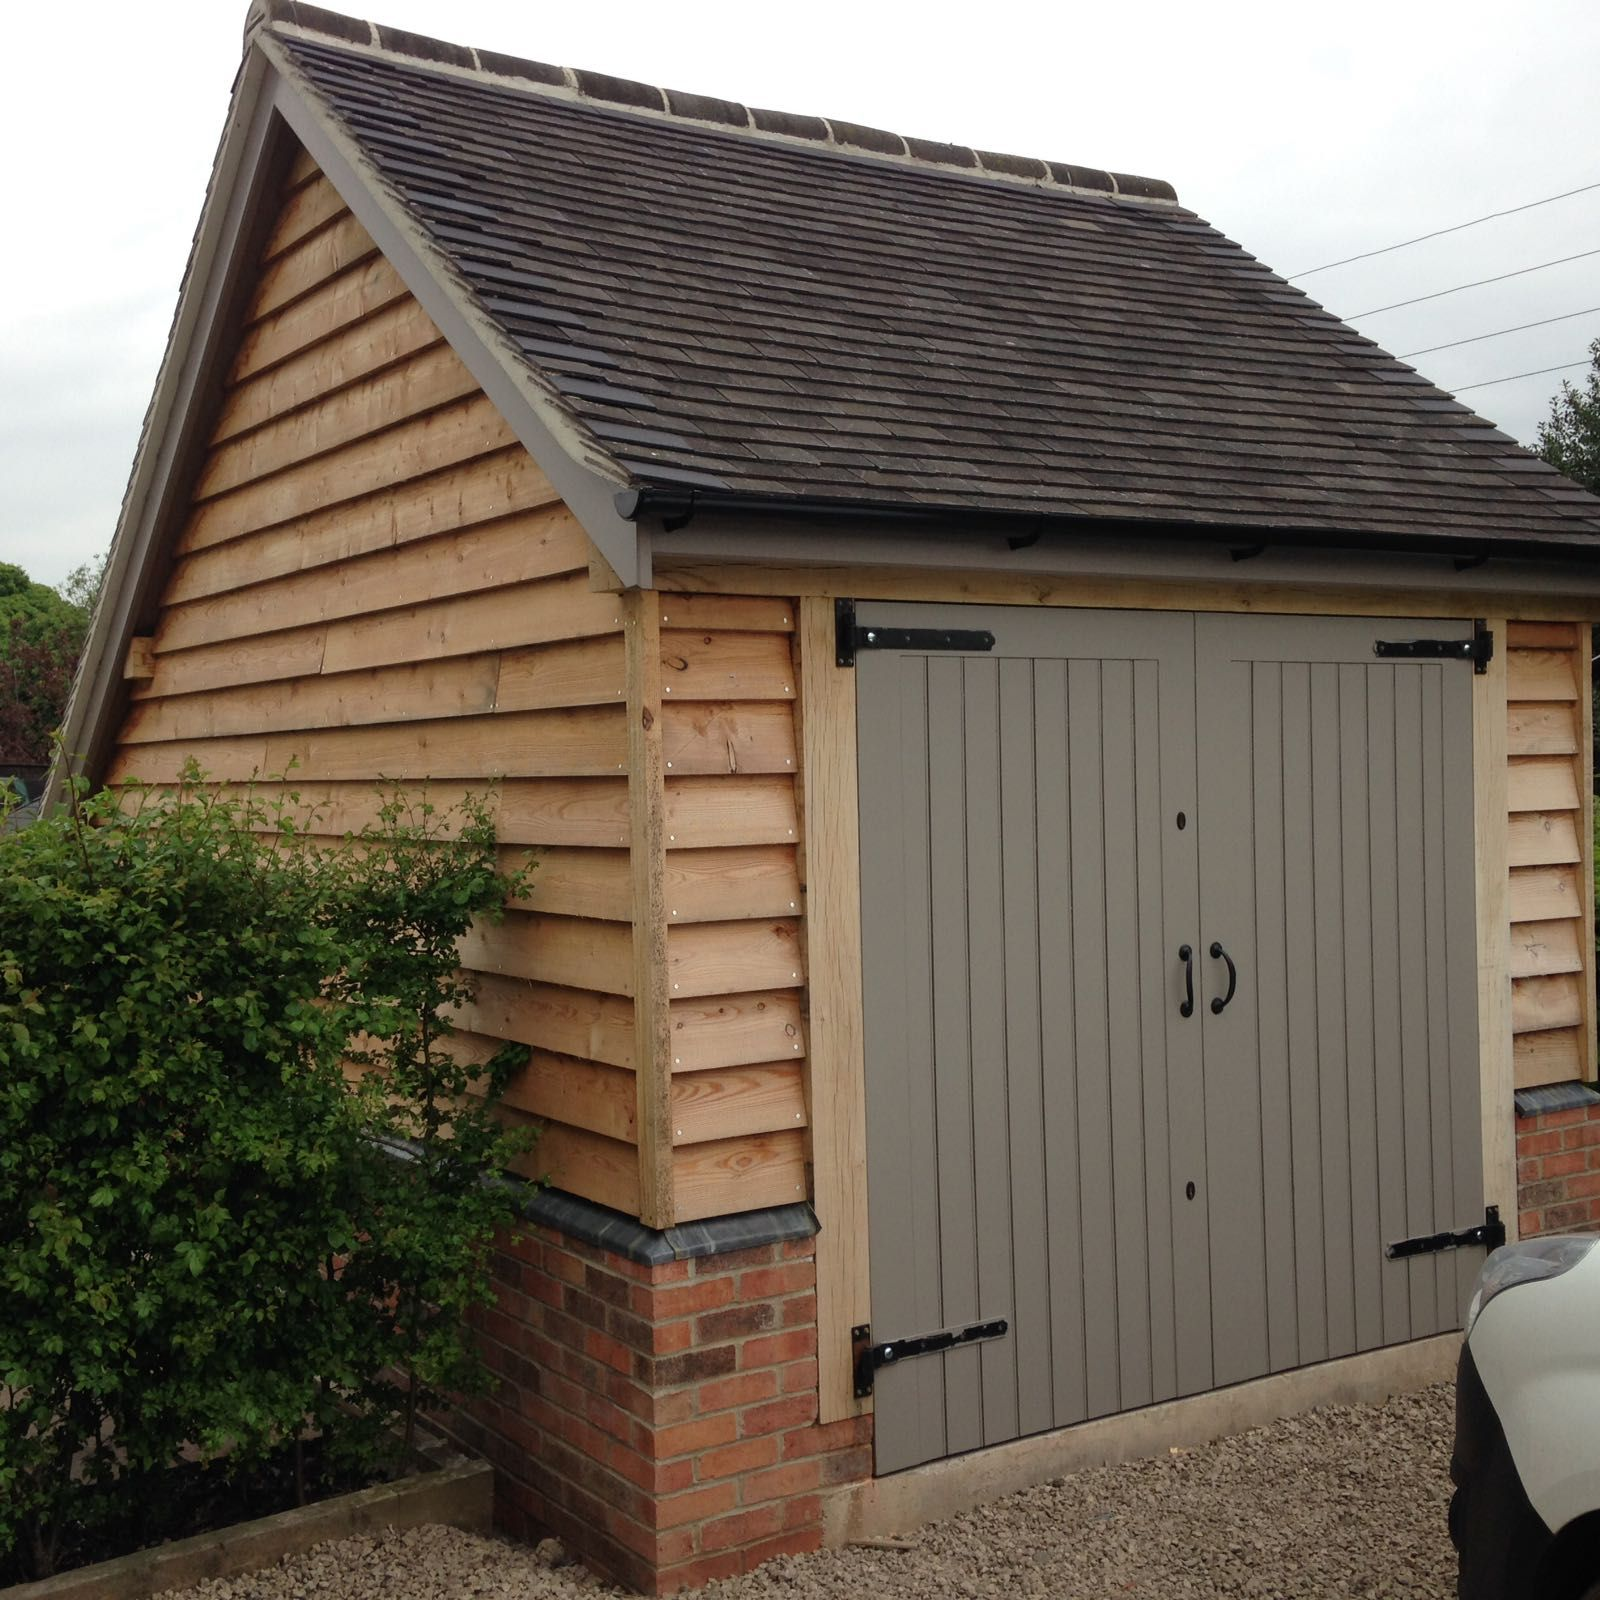 oak frame garage larch cladding and brick plinths farrall and ball rh pinterest com timber frame garage cost timber frame garage cost